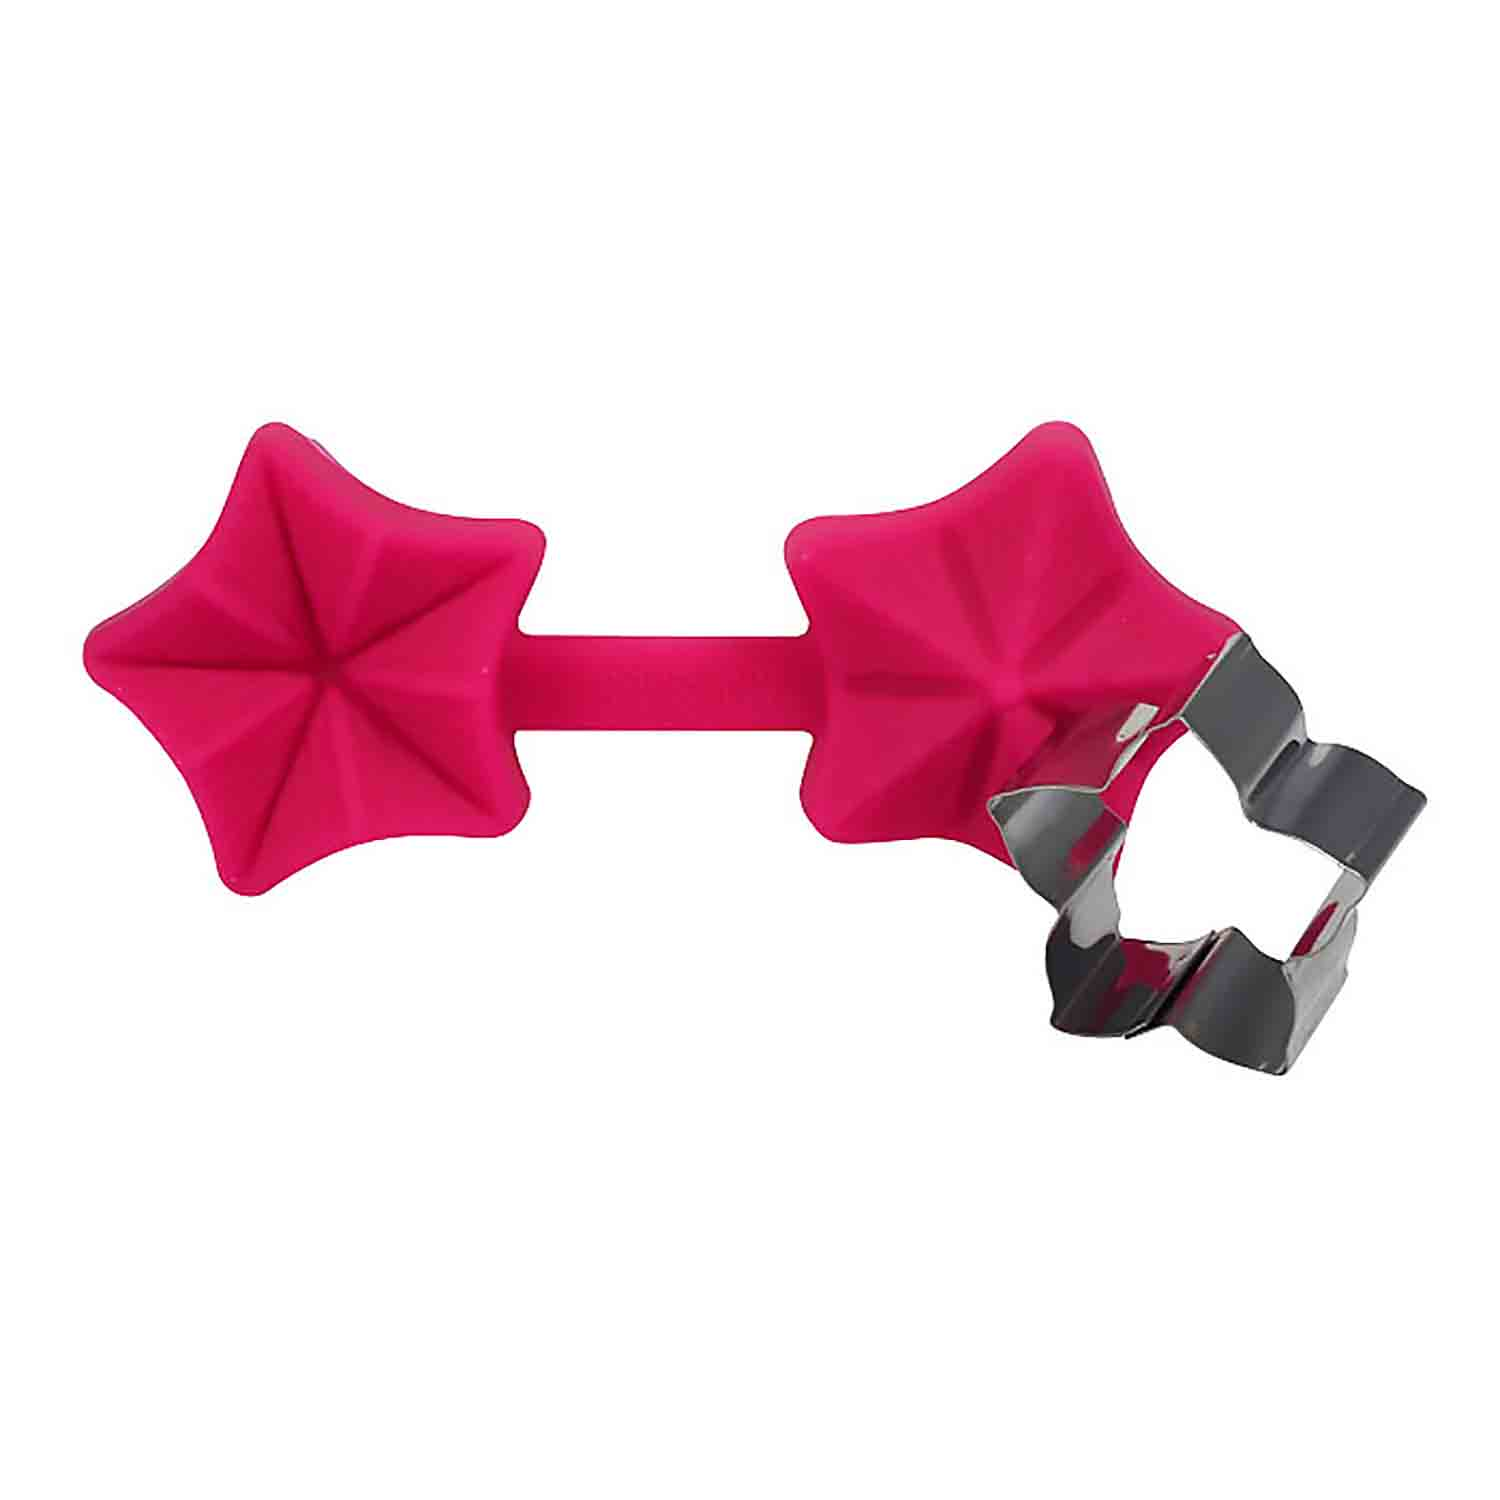 Petunia Cutter and Veiner Set